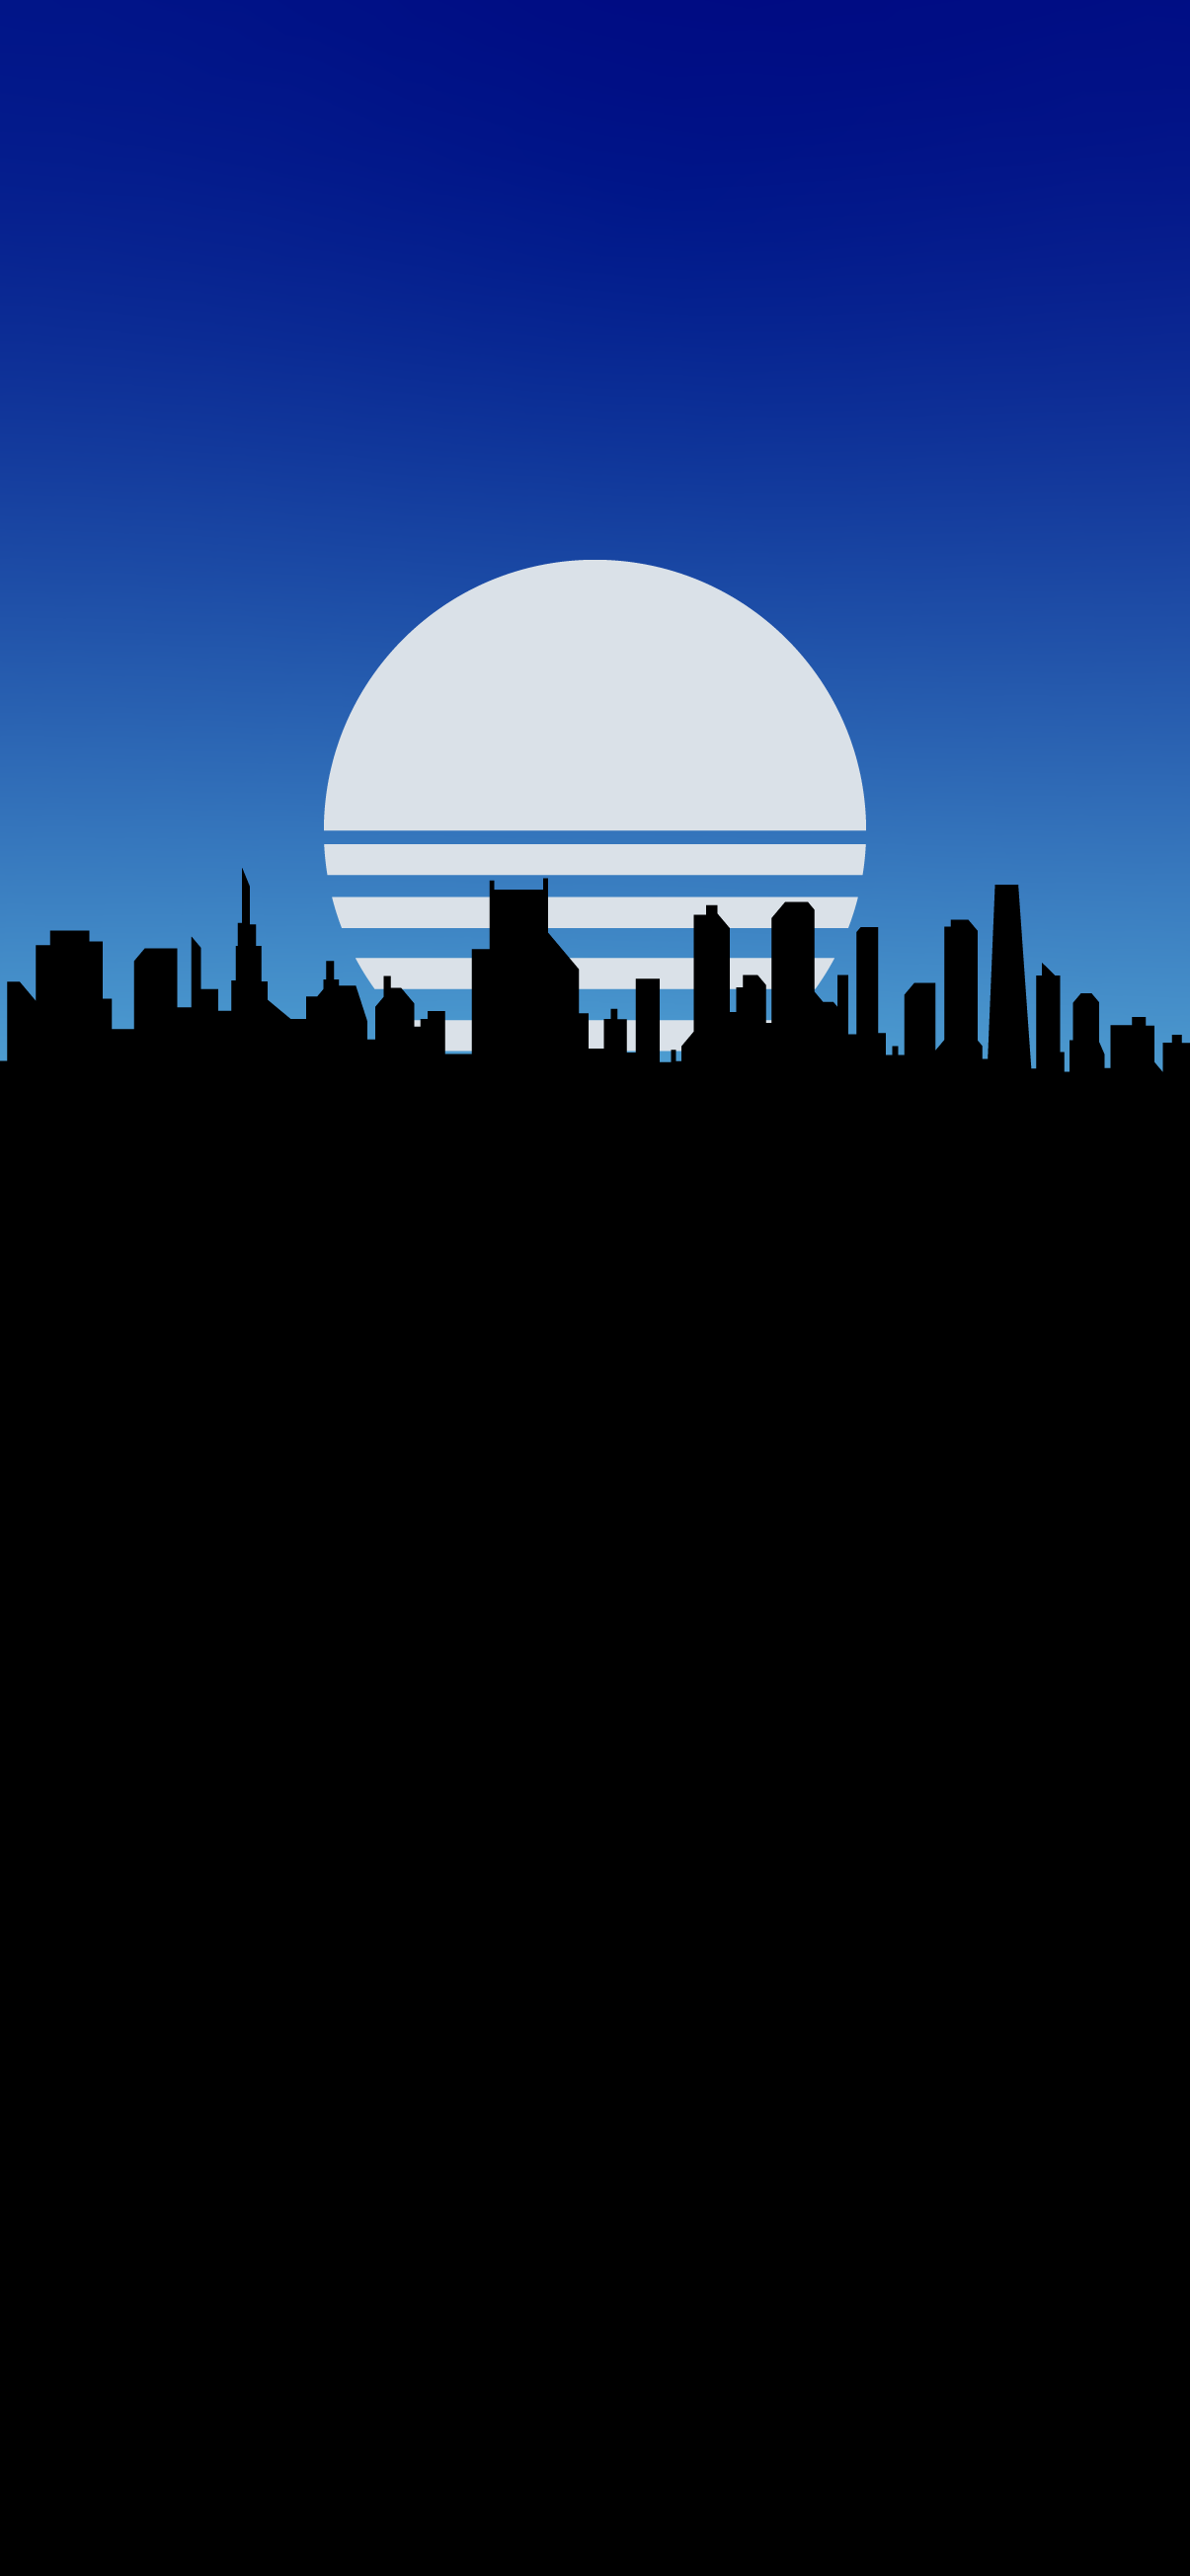 synthwave-retro-wave-iphone-wallpaper-hd-city-silhouette